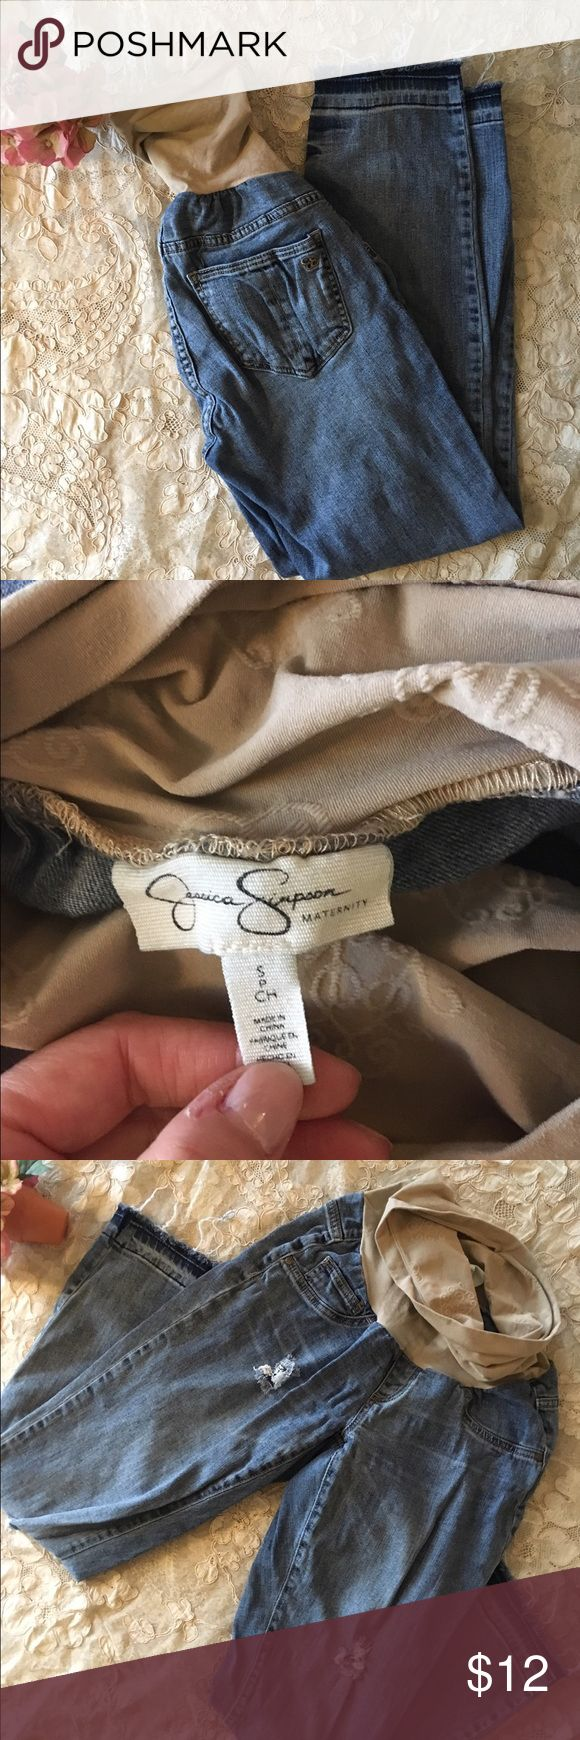 Jessica Simpson Maternity Jeans Ultra-comfy and stylish jeans from Jessica Simpson. These are a straight/slim leg with distressing and rips. I wore these throughout my second pregnancy and loved them! EUC Jessica Simpson Jeans